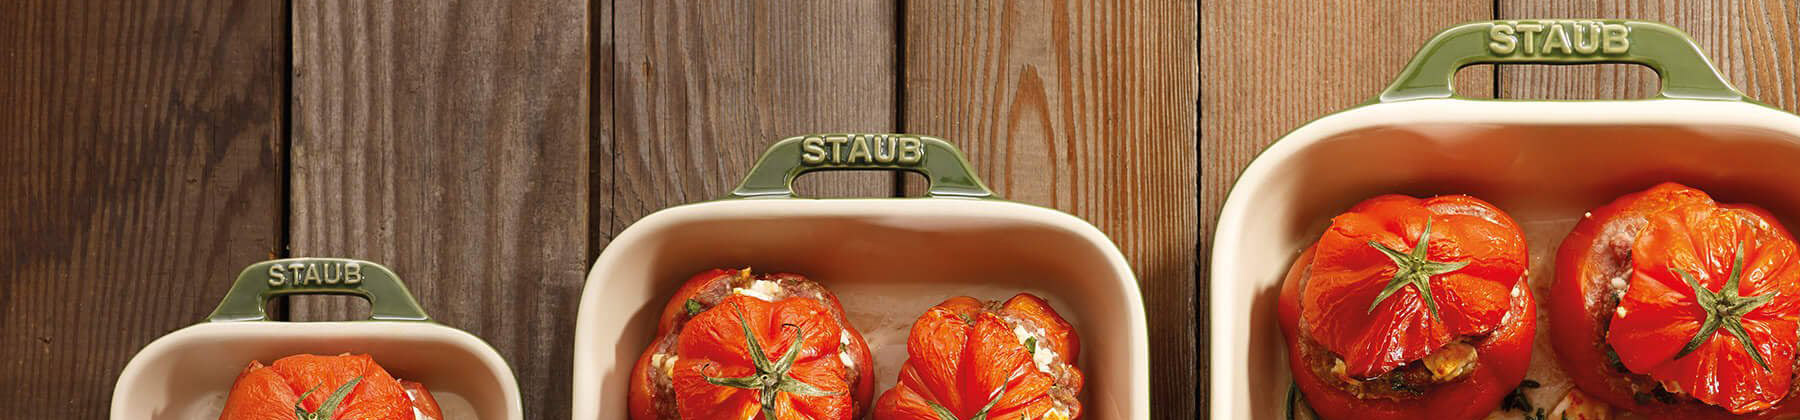 Photo of Staub cookware and bakeware.